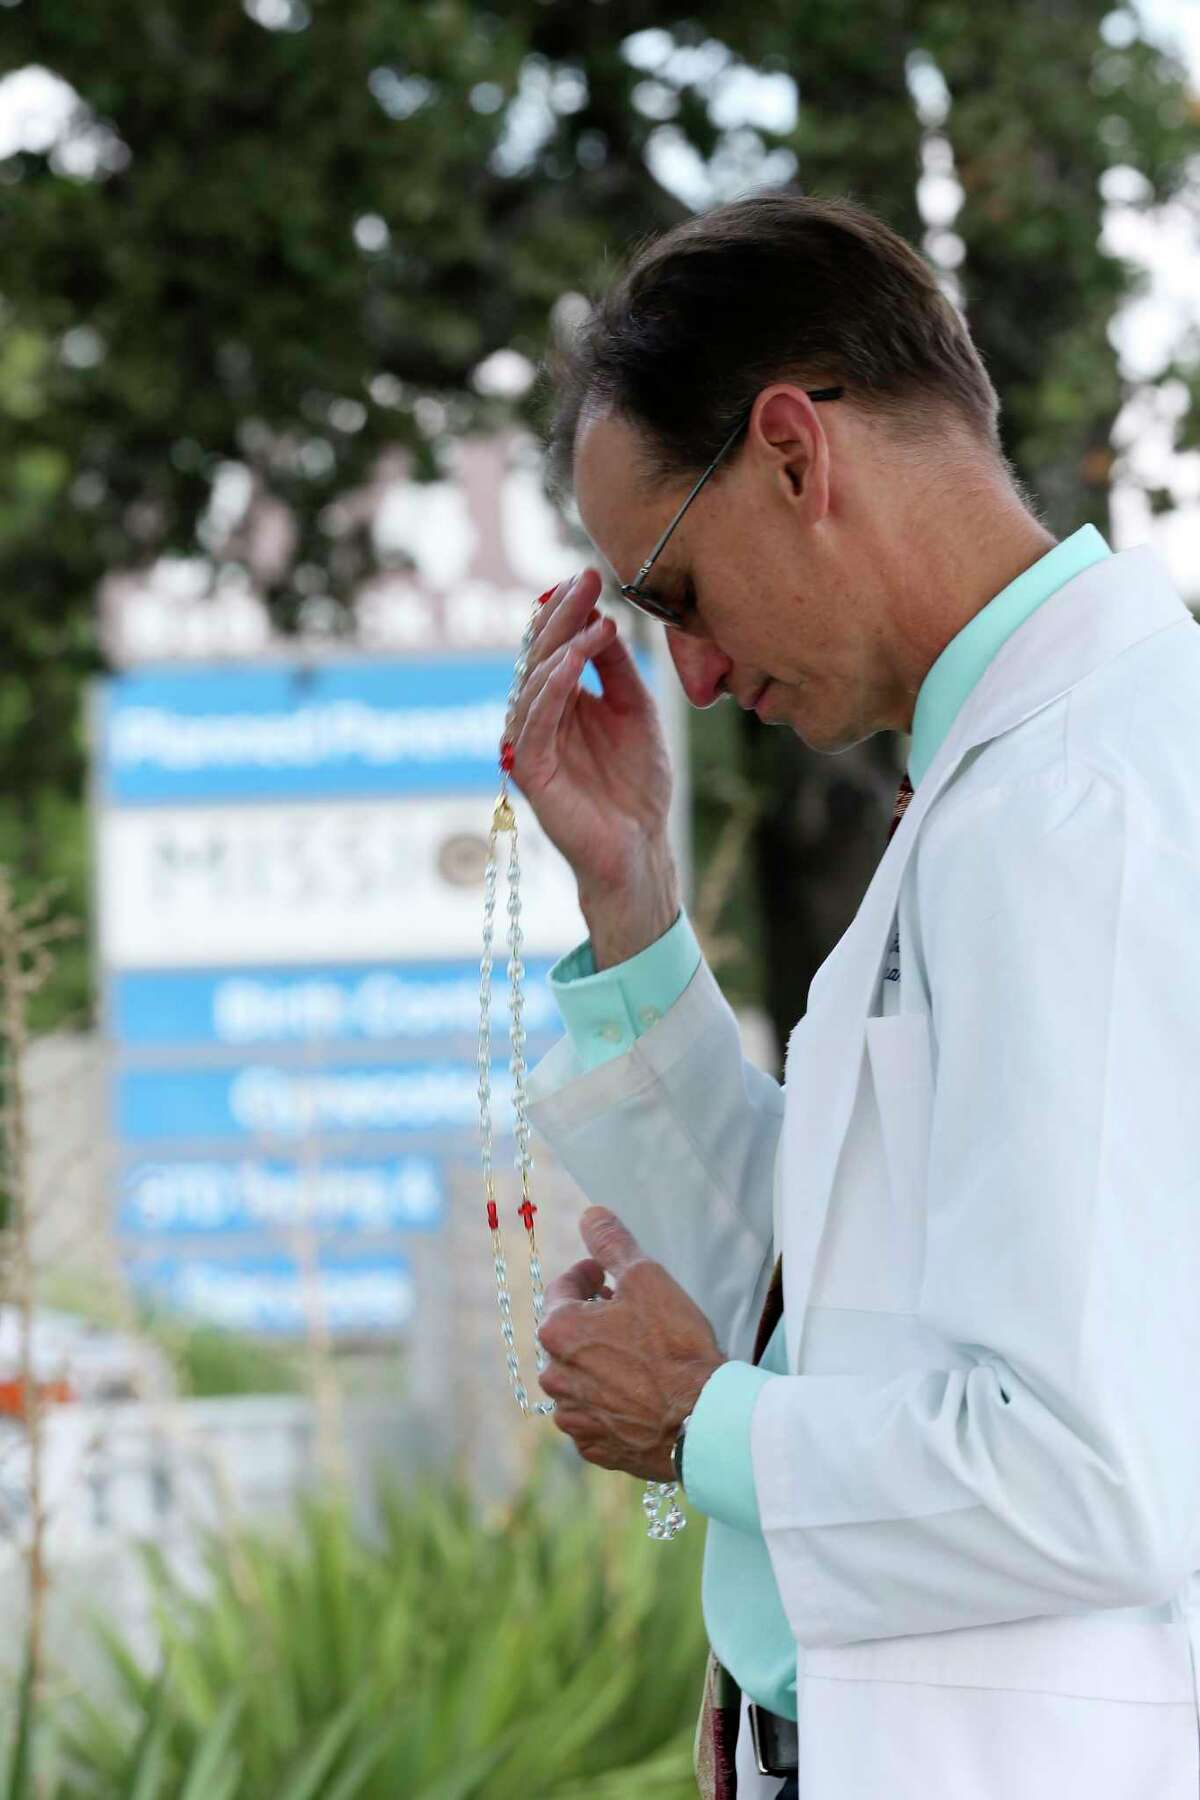 Family practitioner Dr. Mitch Finnie, 56, recites the Rosary in front of the Planned Parenthood offices on Babcock Road, Thursday, Sept. 2, 2021. Finnie said he does it once a week.